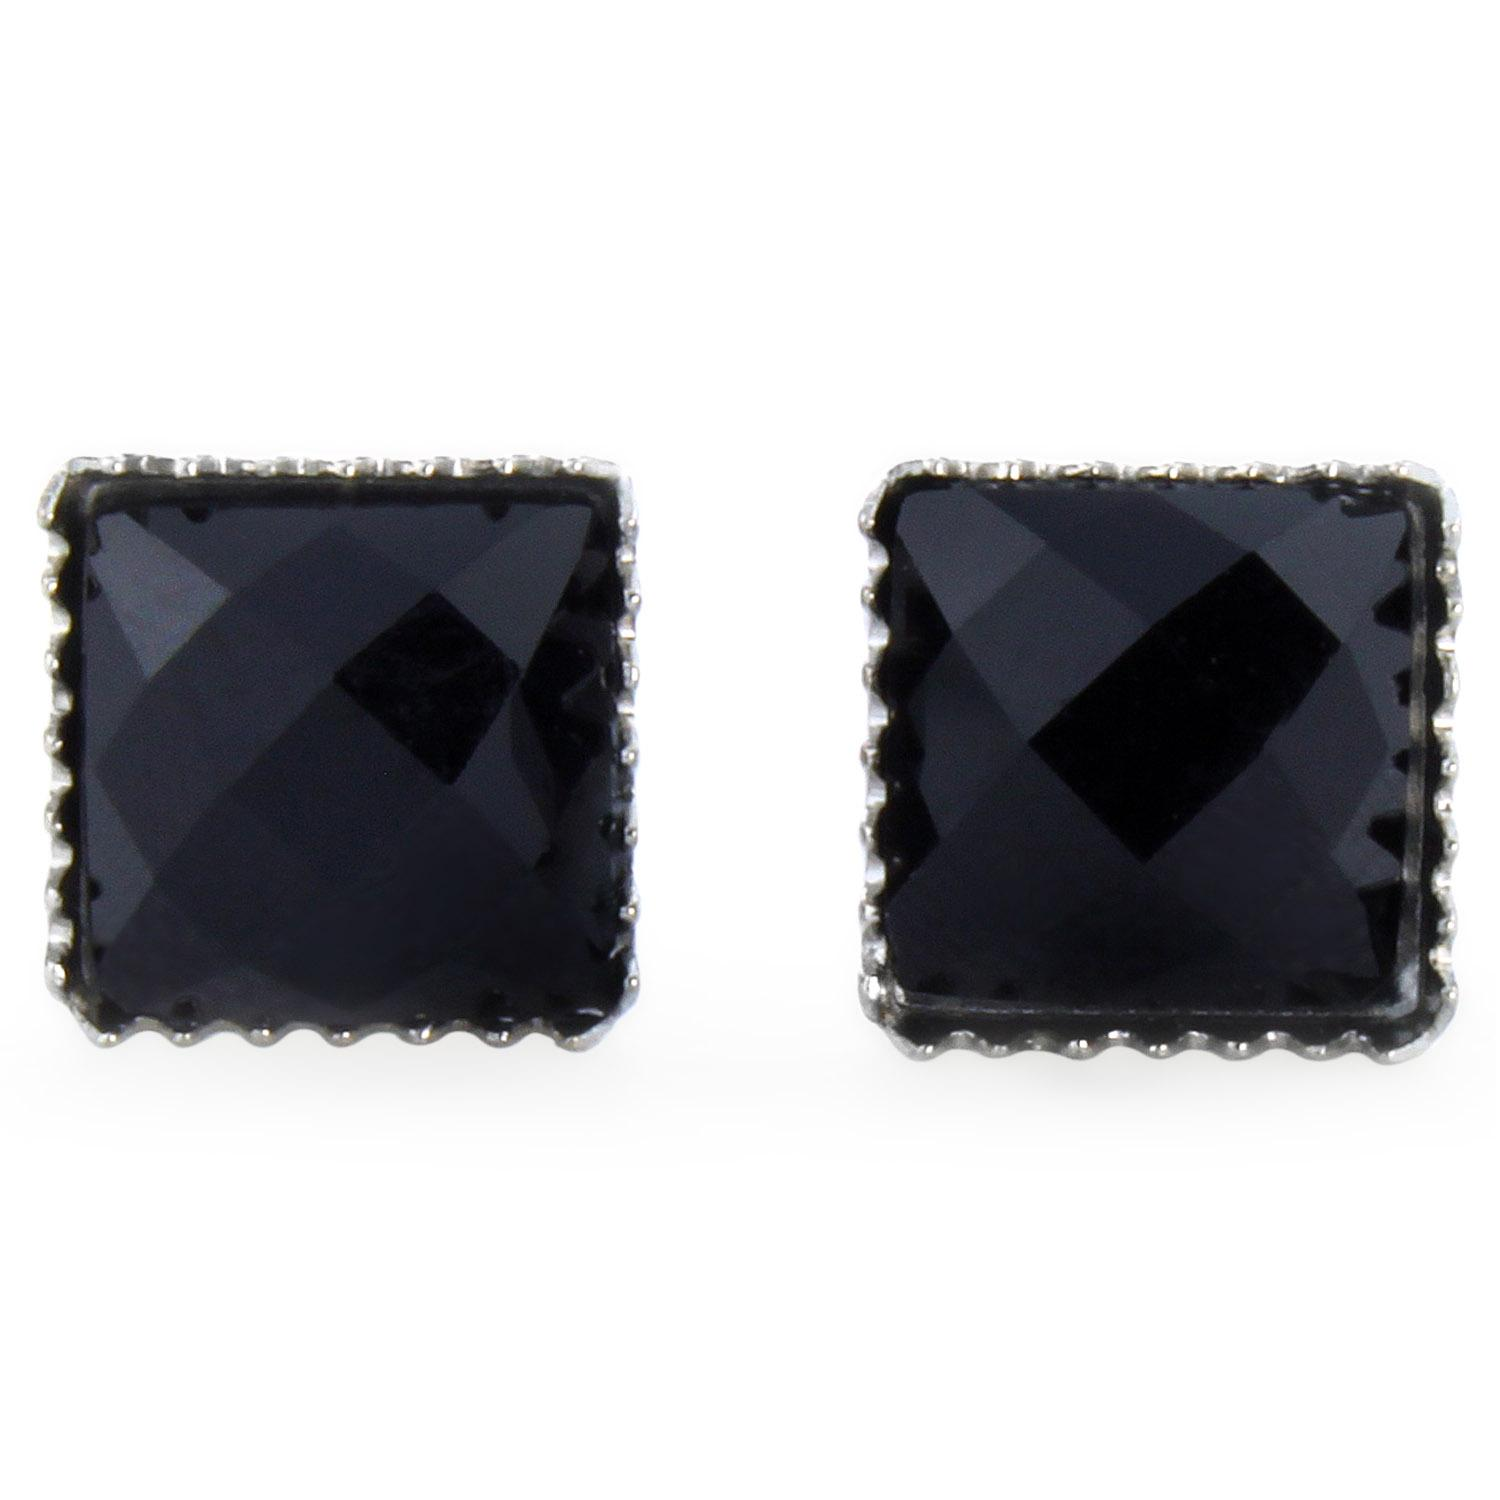 Pair of 316L Surgical Steel Faceted Square Black Onyx Gem Earrings - 6 mm